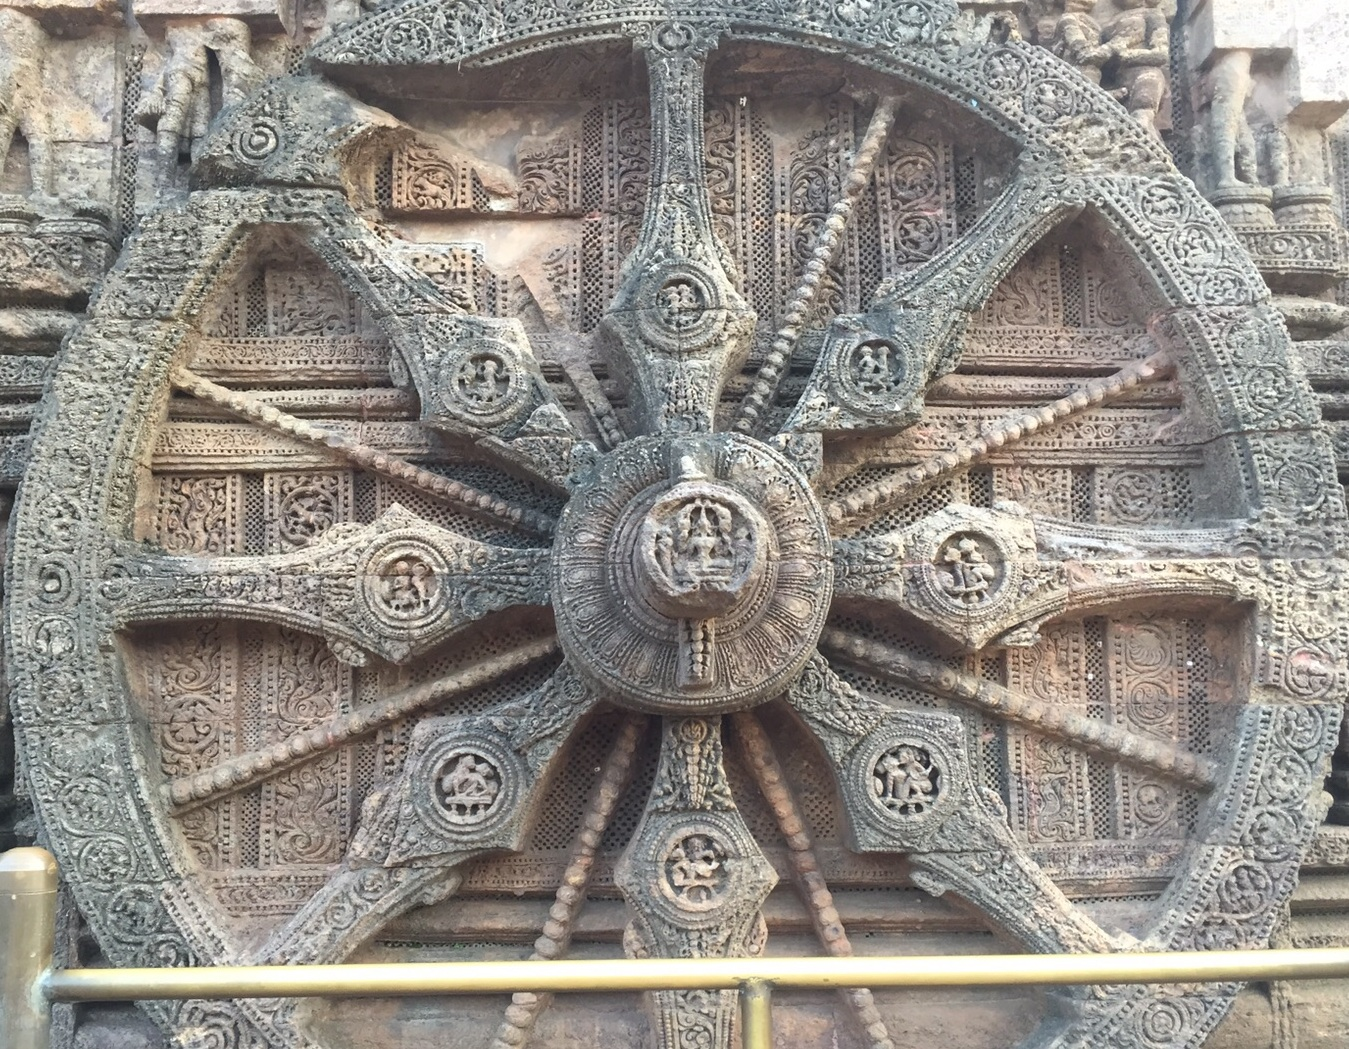 Each sexual position is different from the other on different spokes of the wheel